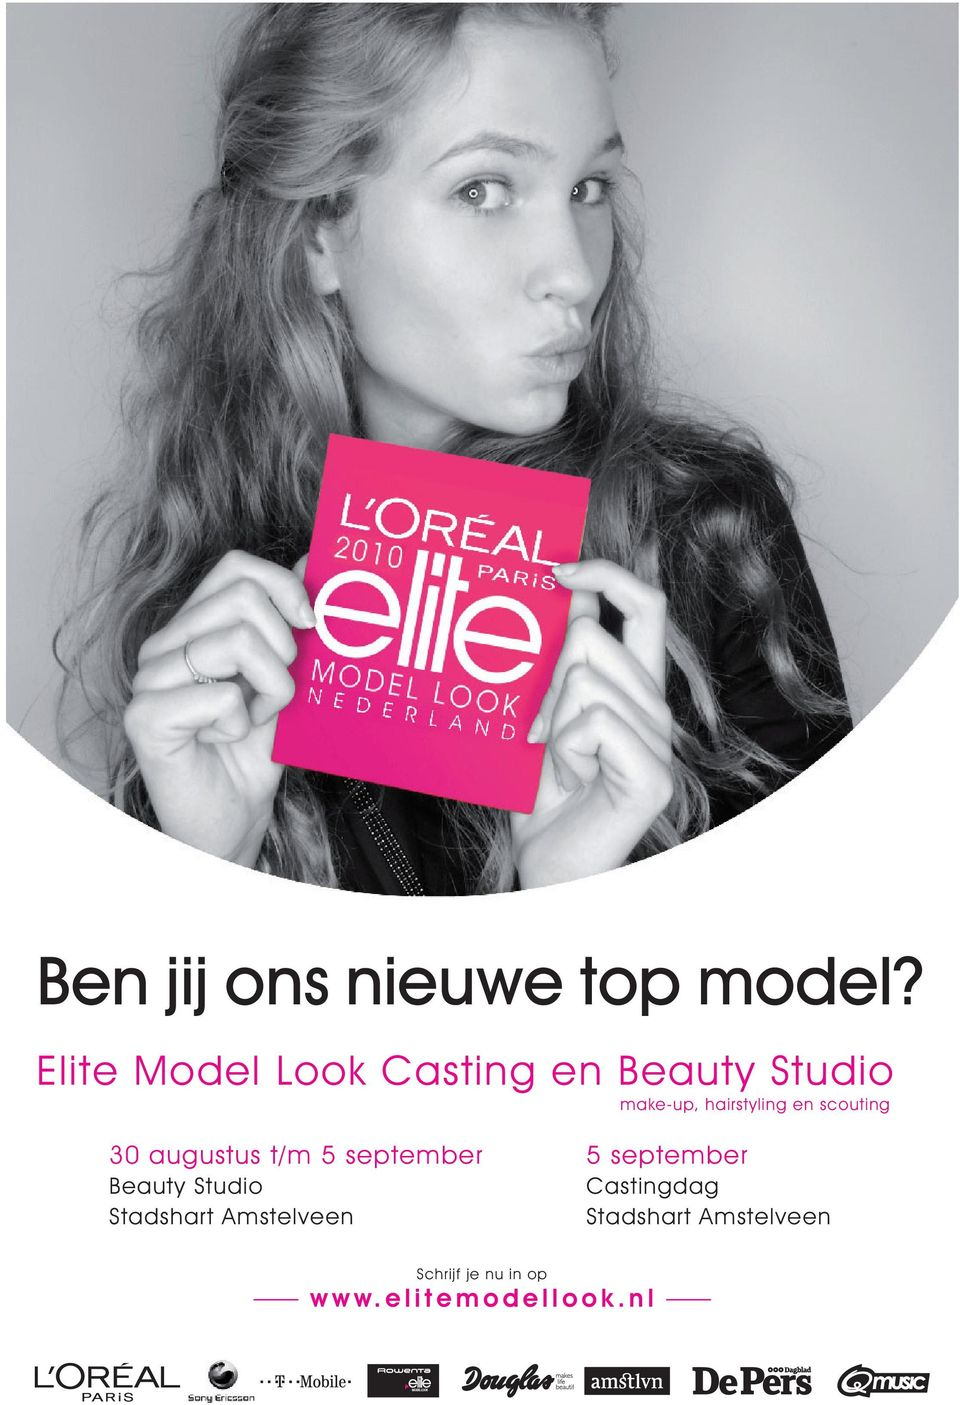 en scouting 30 augustus t/m 5 september Beauty Studio Stadshart